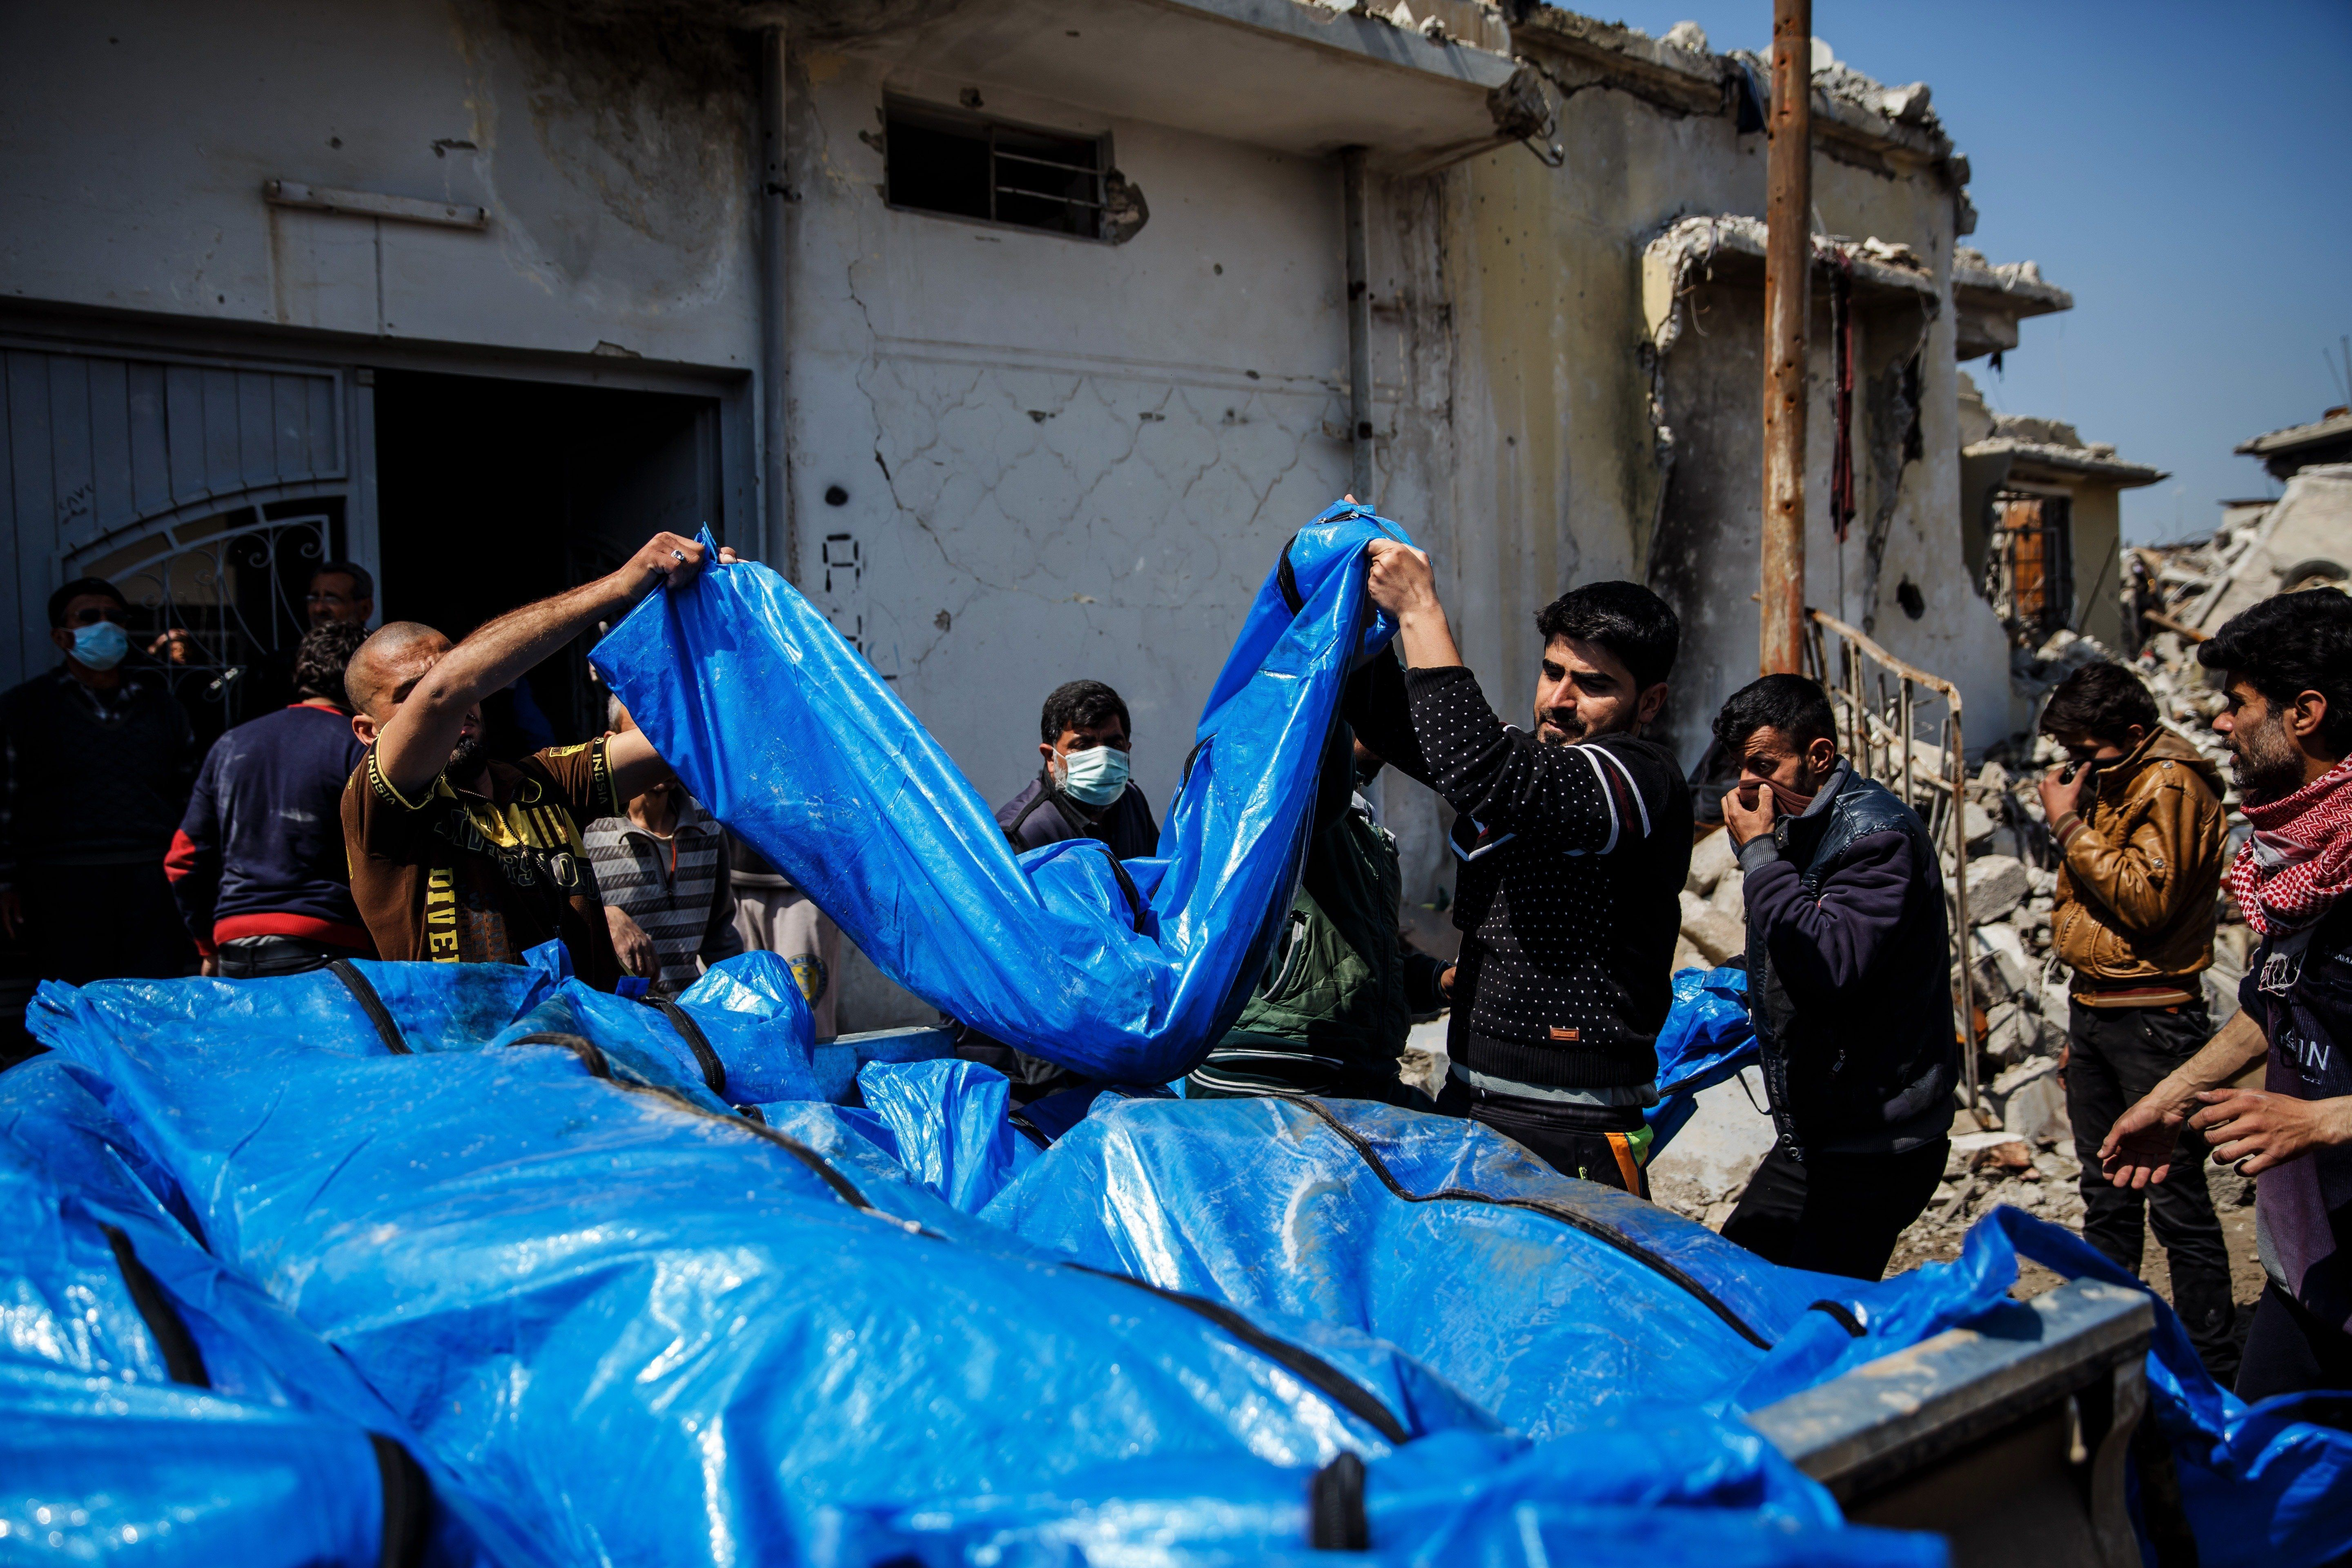 MOSUL, NINEVEH PROVINCE -- FRIDAY, MARCH 24, 2017: Residents pile up body bags in the back of a pick up truck after recovering it from the rubble where there were reported coalition air strikes in the Mosul al-Jadida neighborhood of Mosul, Nineveh Province, on March 24, 2017.  (Photo by Marcus Yam/Los Angeles Times via Getty Images)